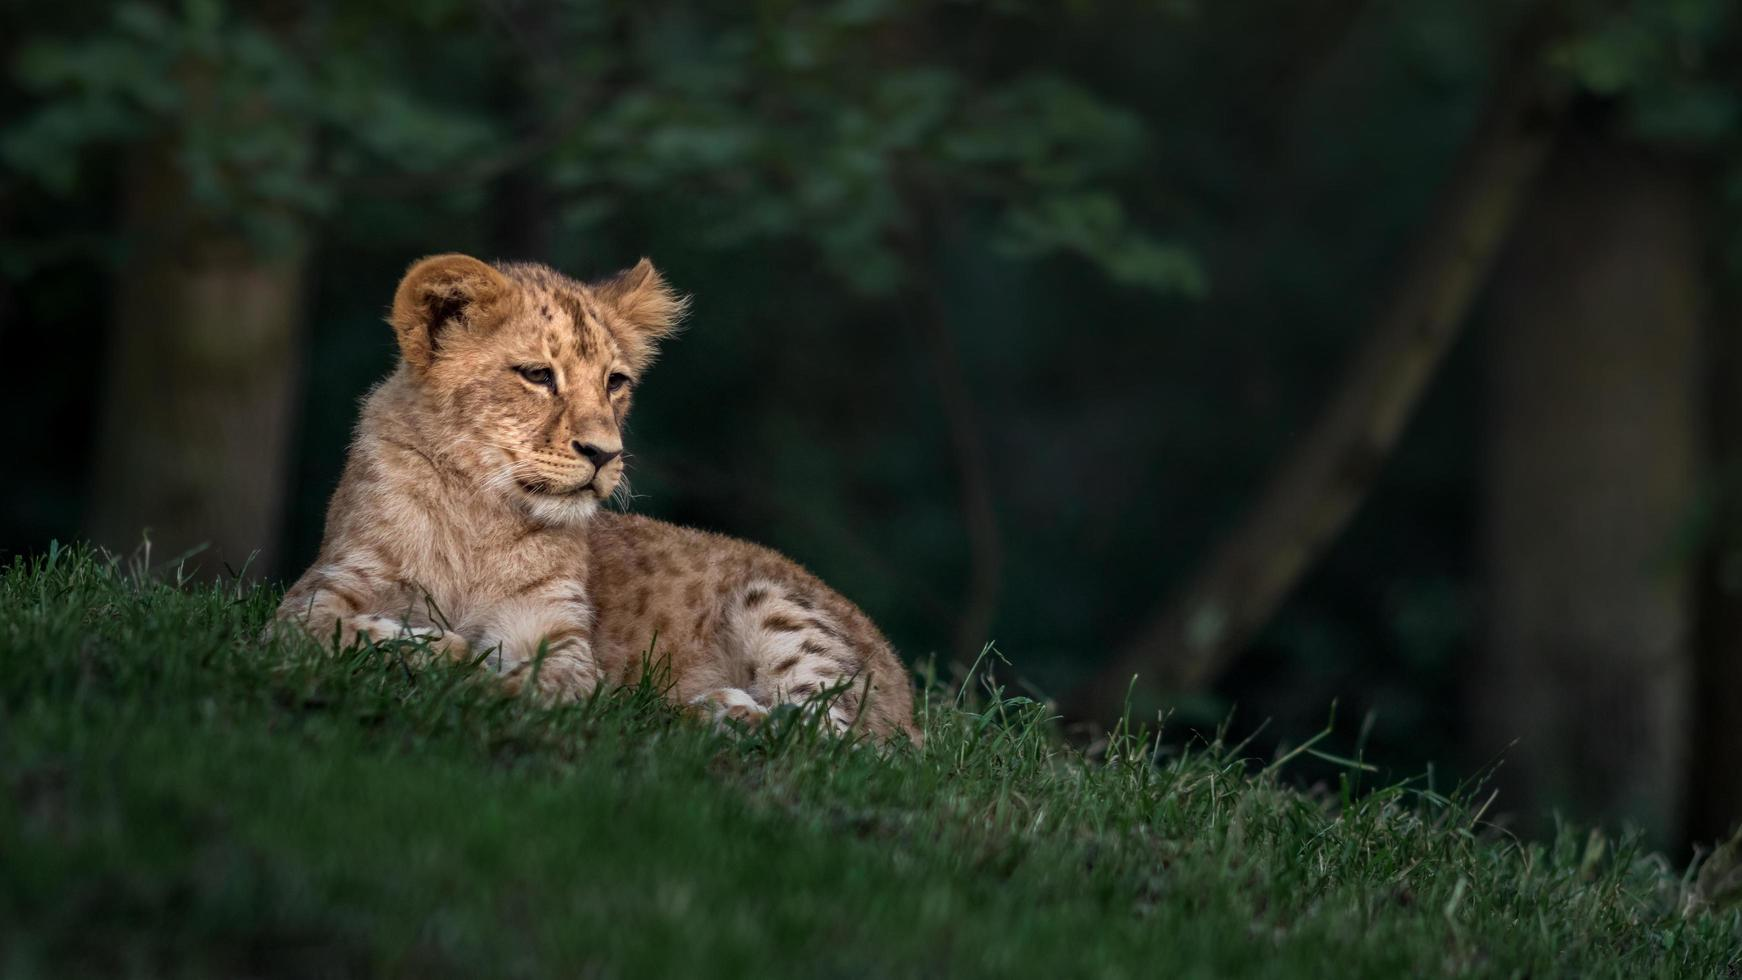 Southern African lion photo